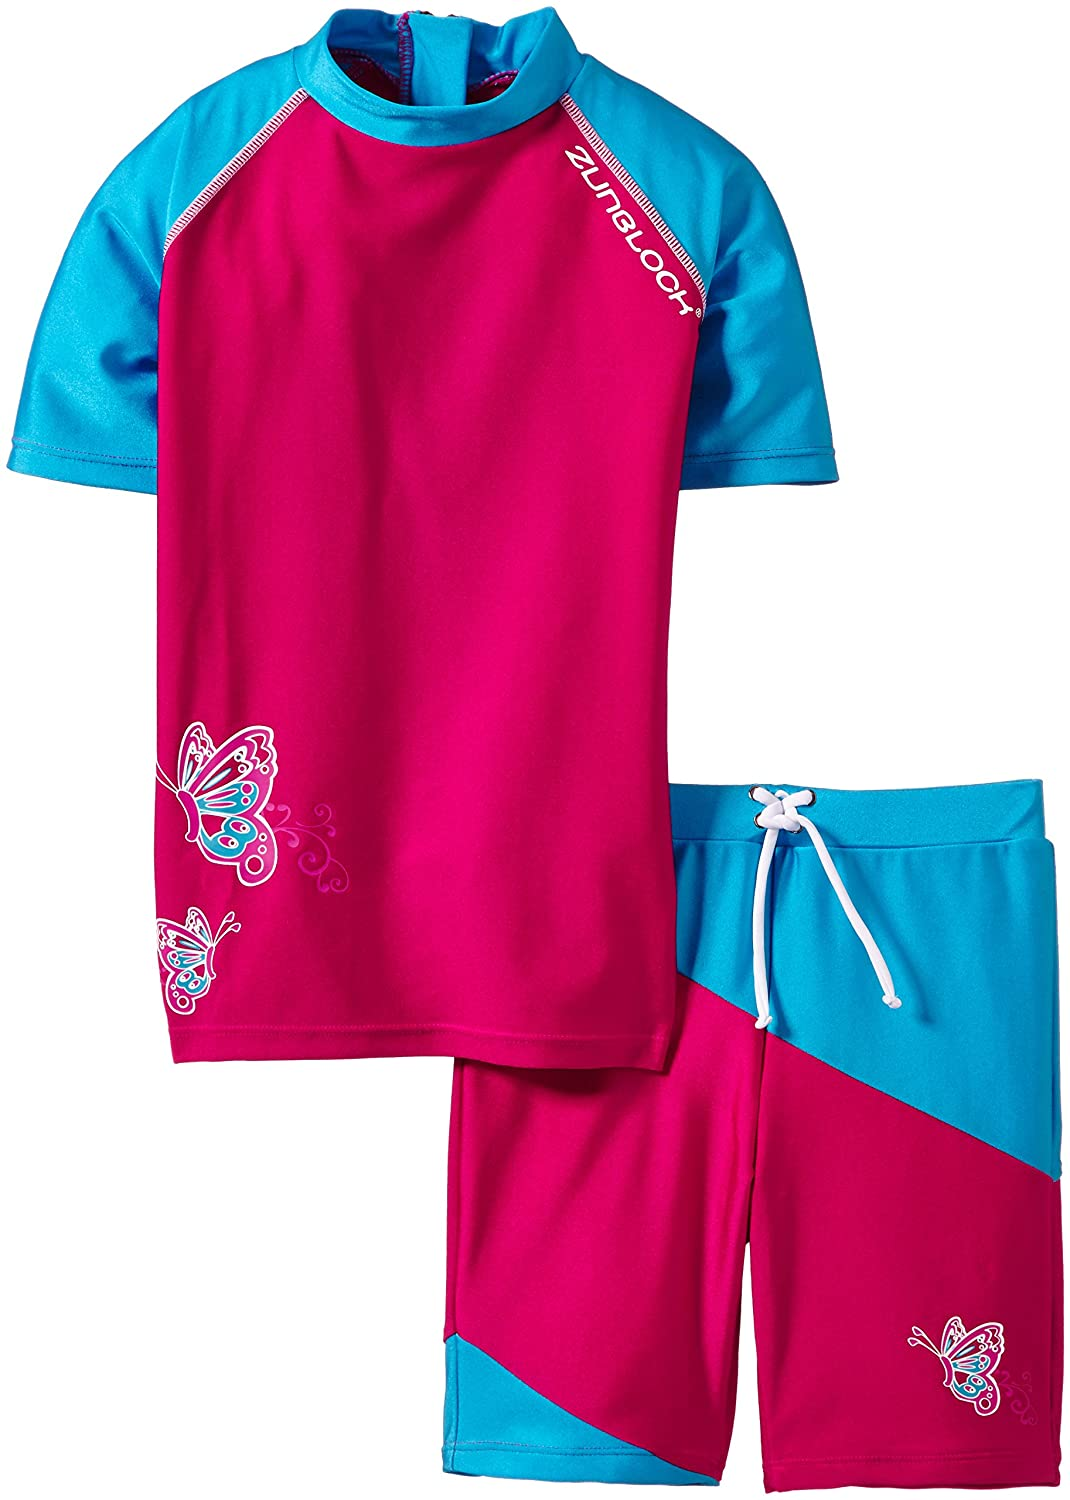 Zunblock UV-Set with Short Sleeves-Butterfly Pink/Turquoise, 98/104cm 2320064